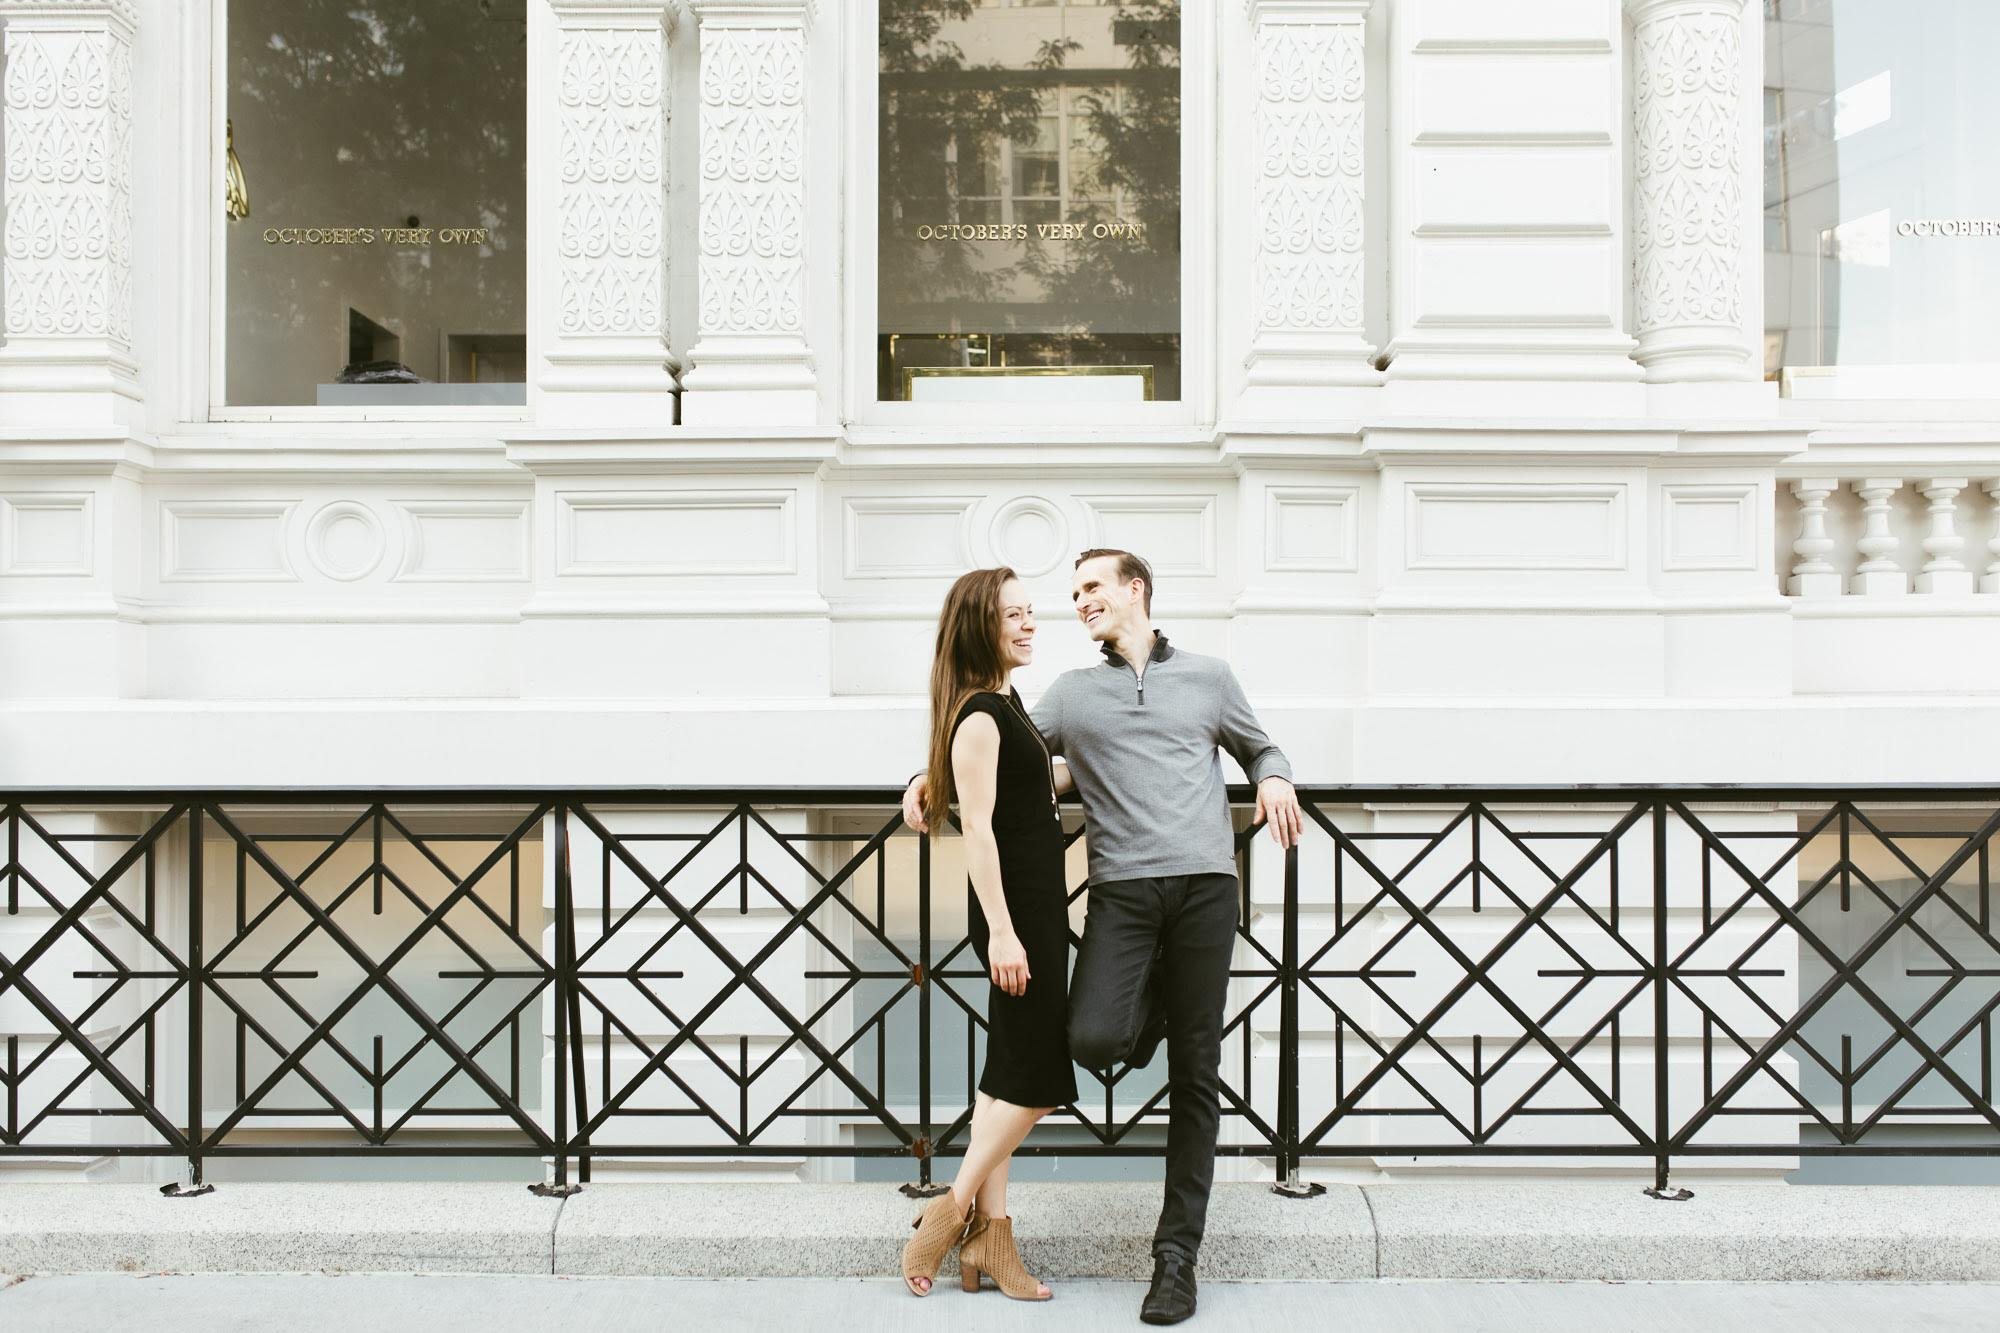 A New York engagement session in Soho by Sarah Wight